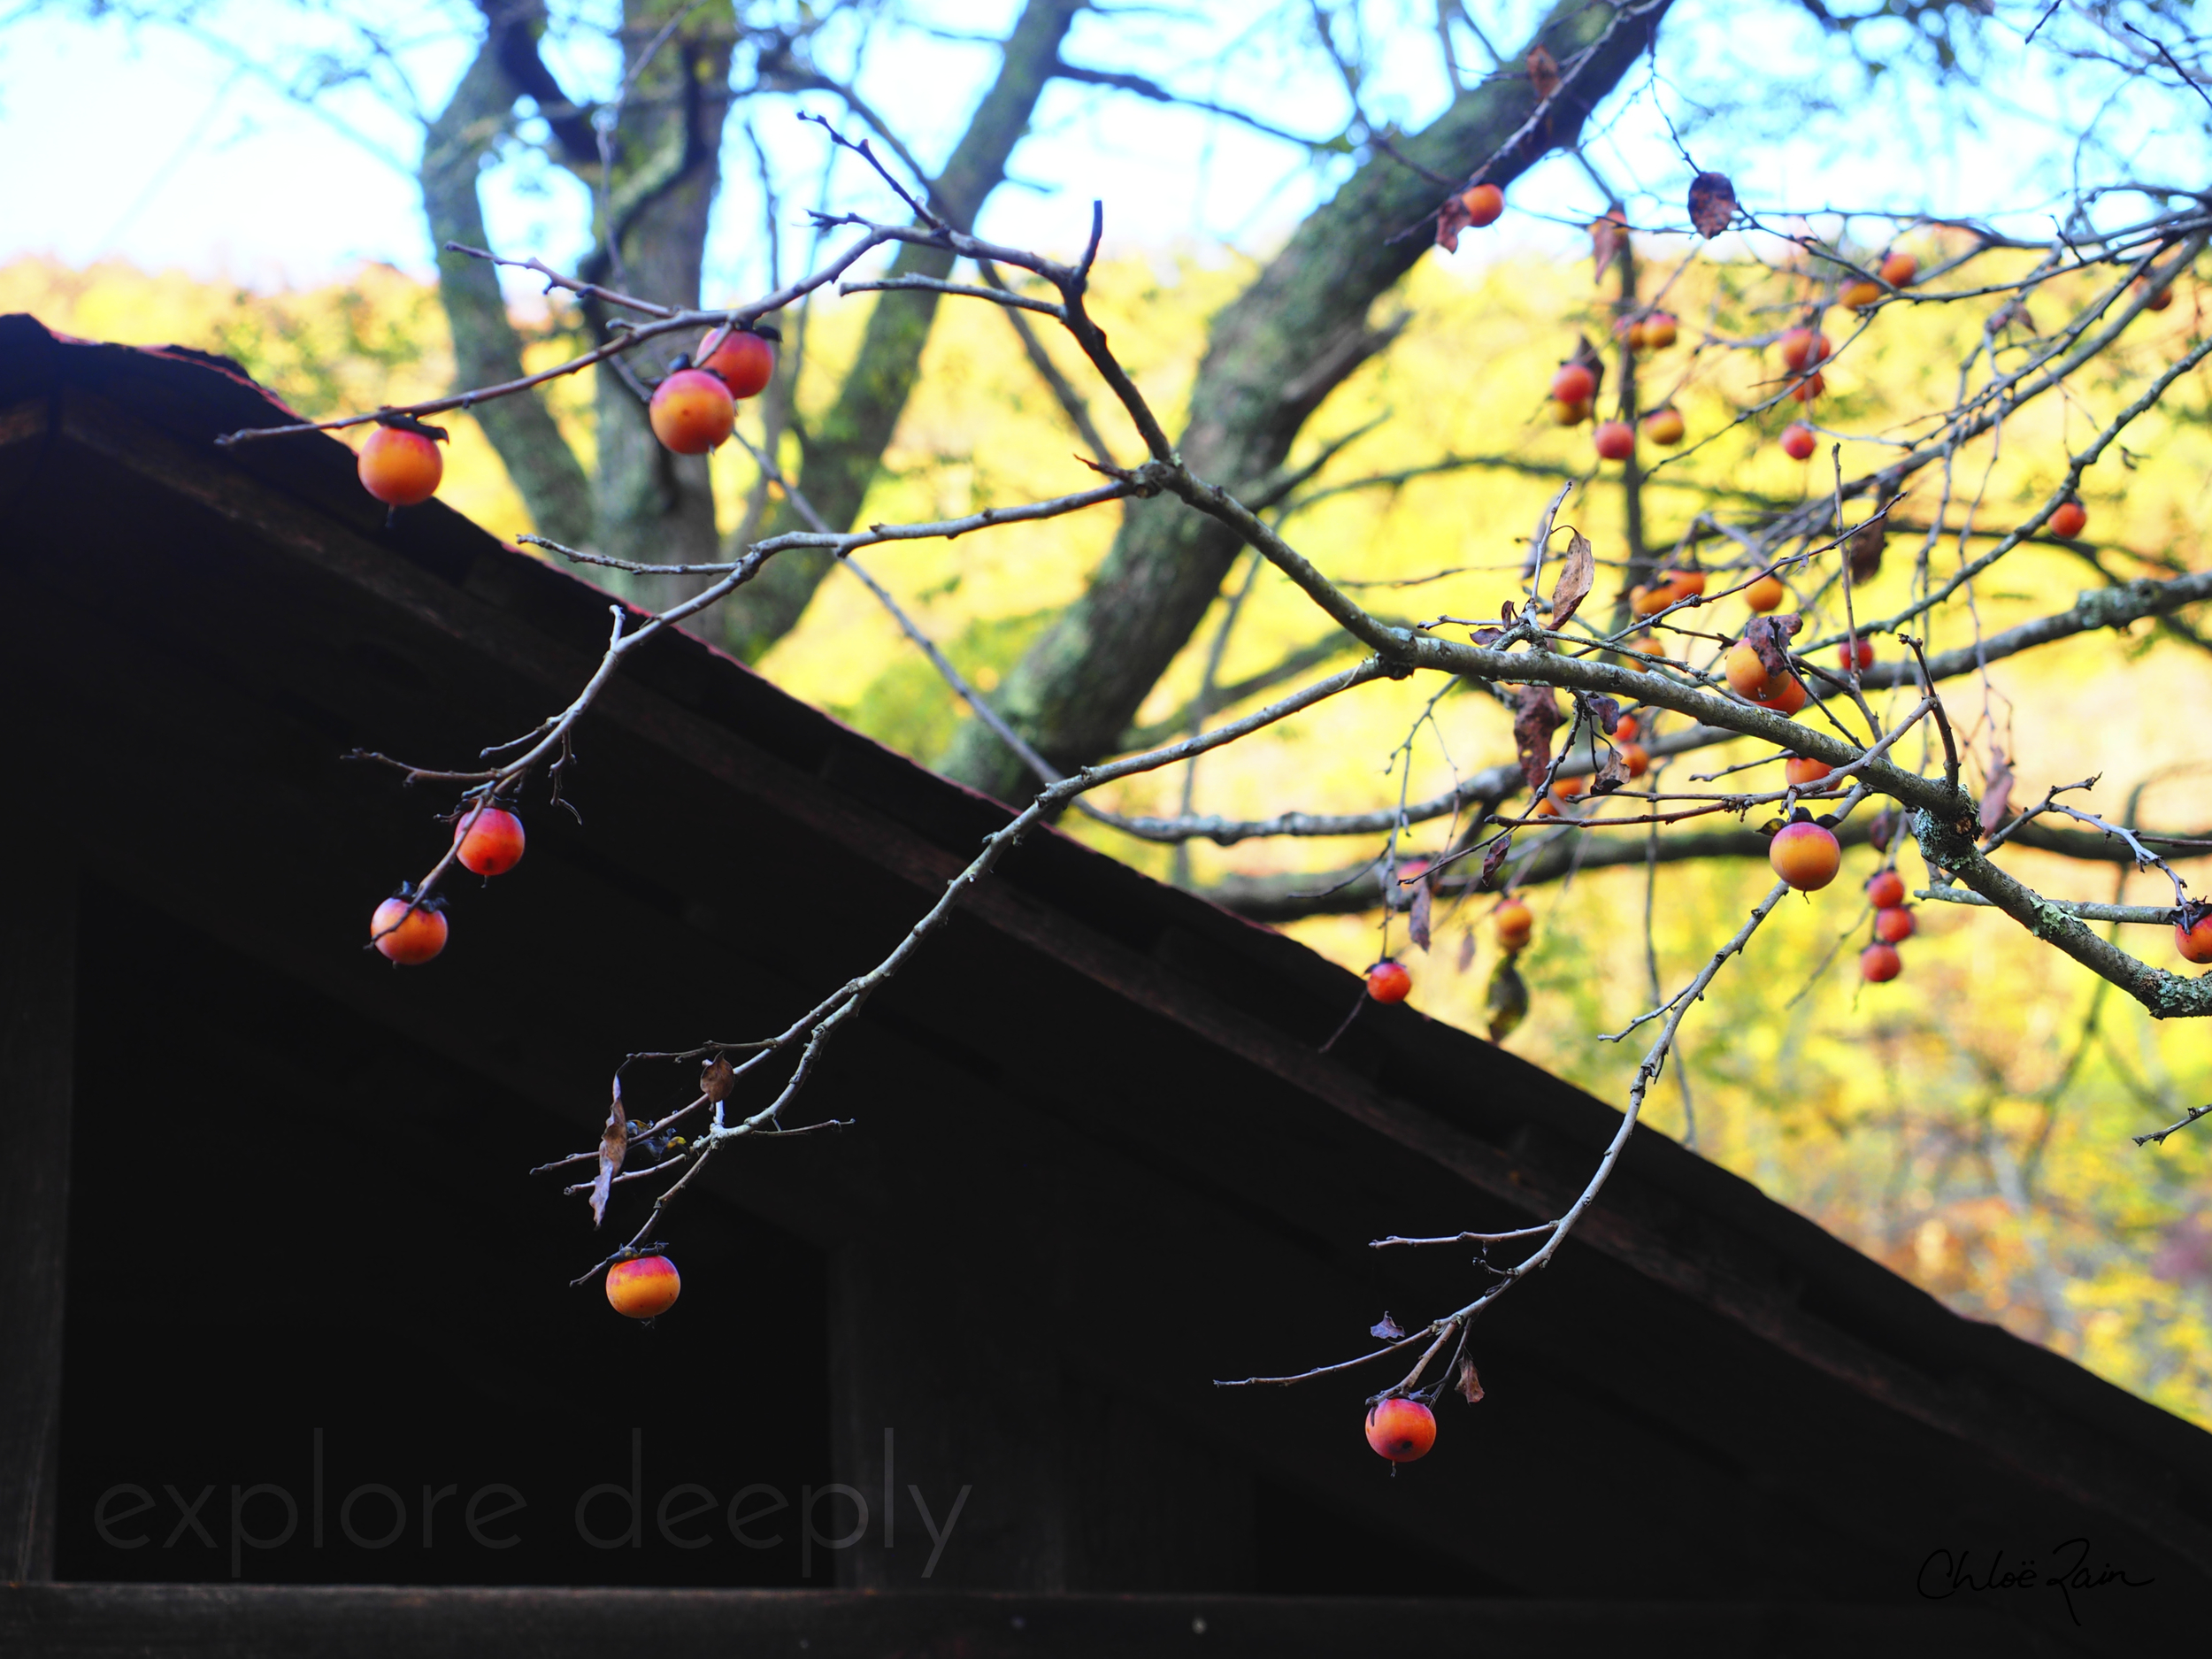 Wild Persimmons in the Fall